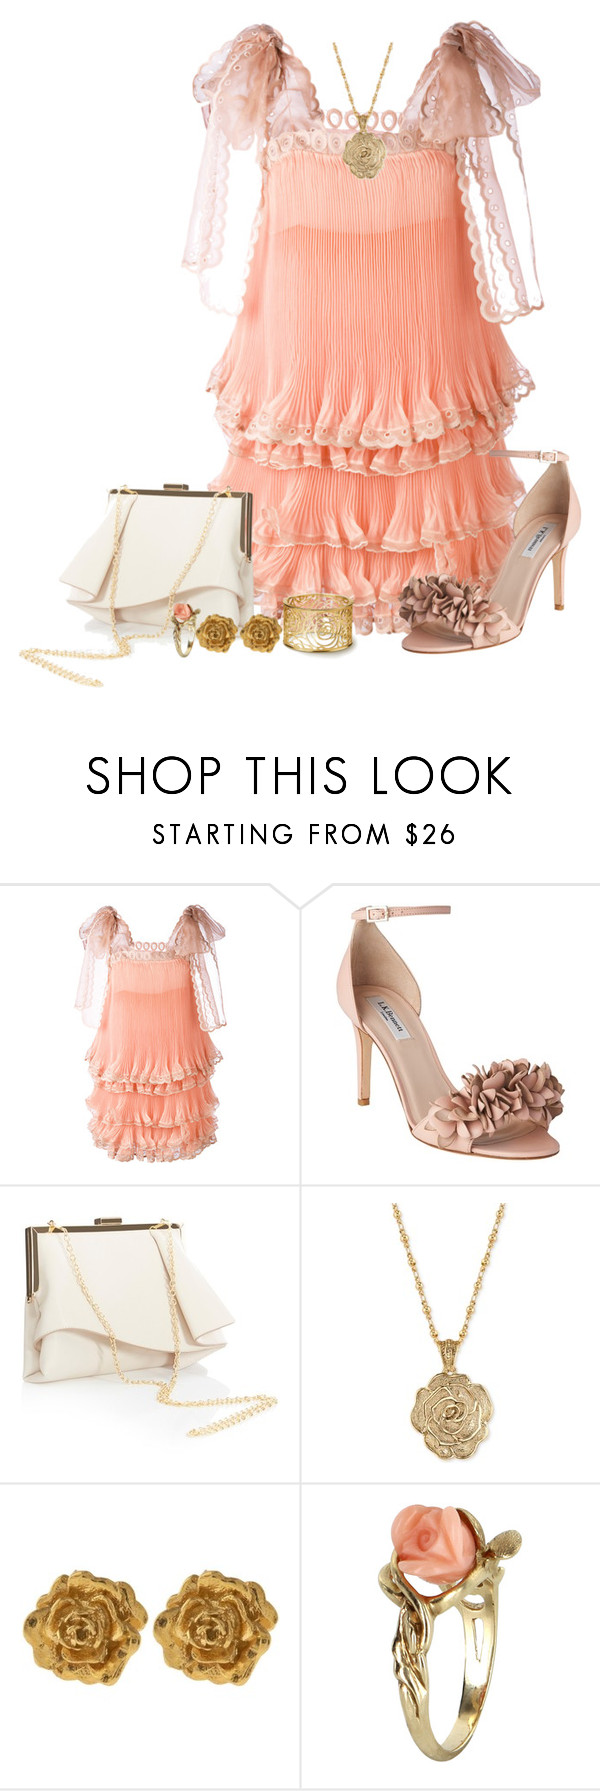 """Girly"" by freida-adams ❤ liked on Polyvore featuring Chloé, L.K.Bennett, Coast, 2028, Liberty and Vintage"